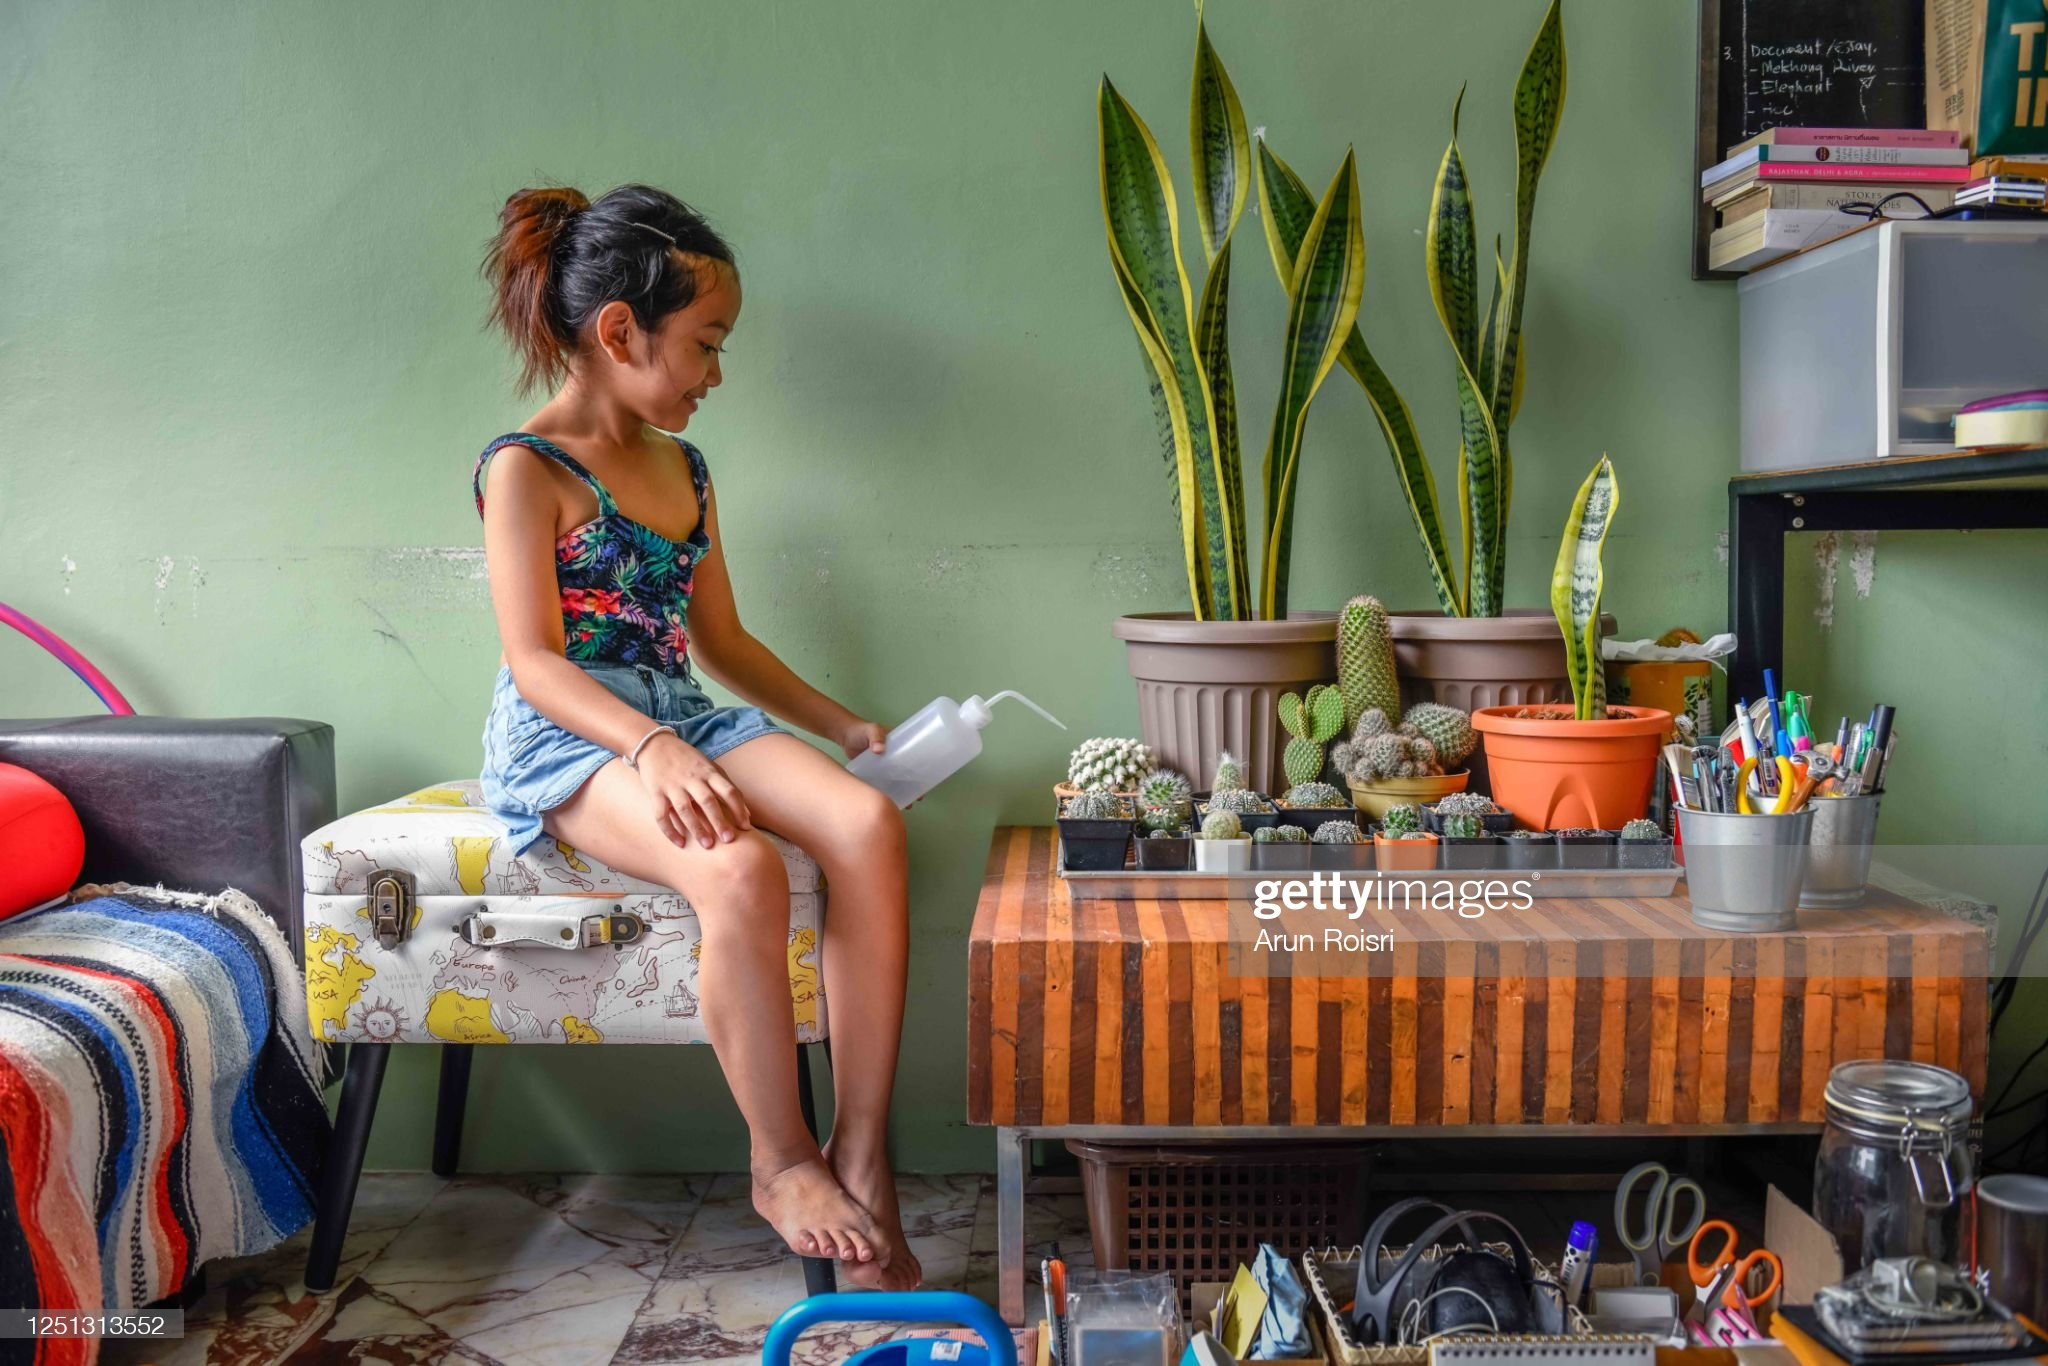 Adorable asian girl watering plants in green living room : 圖庫照片